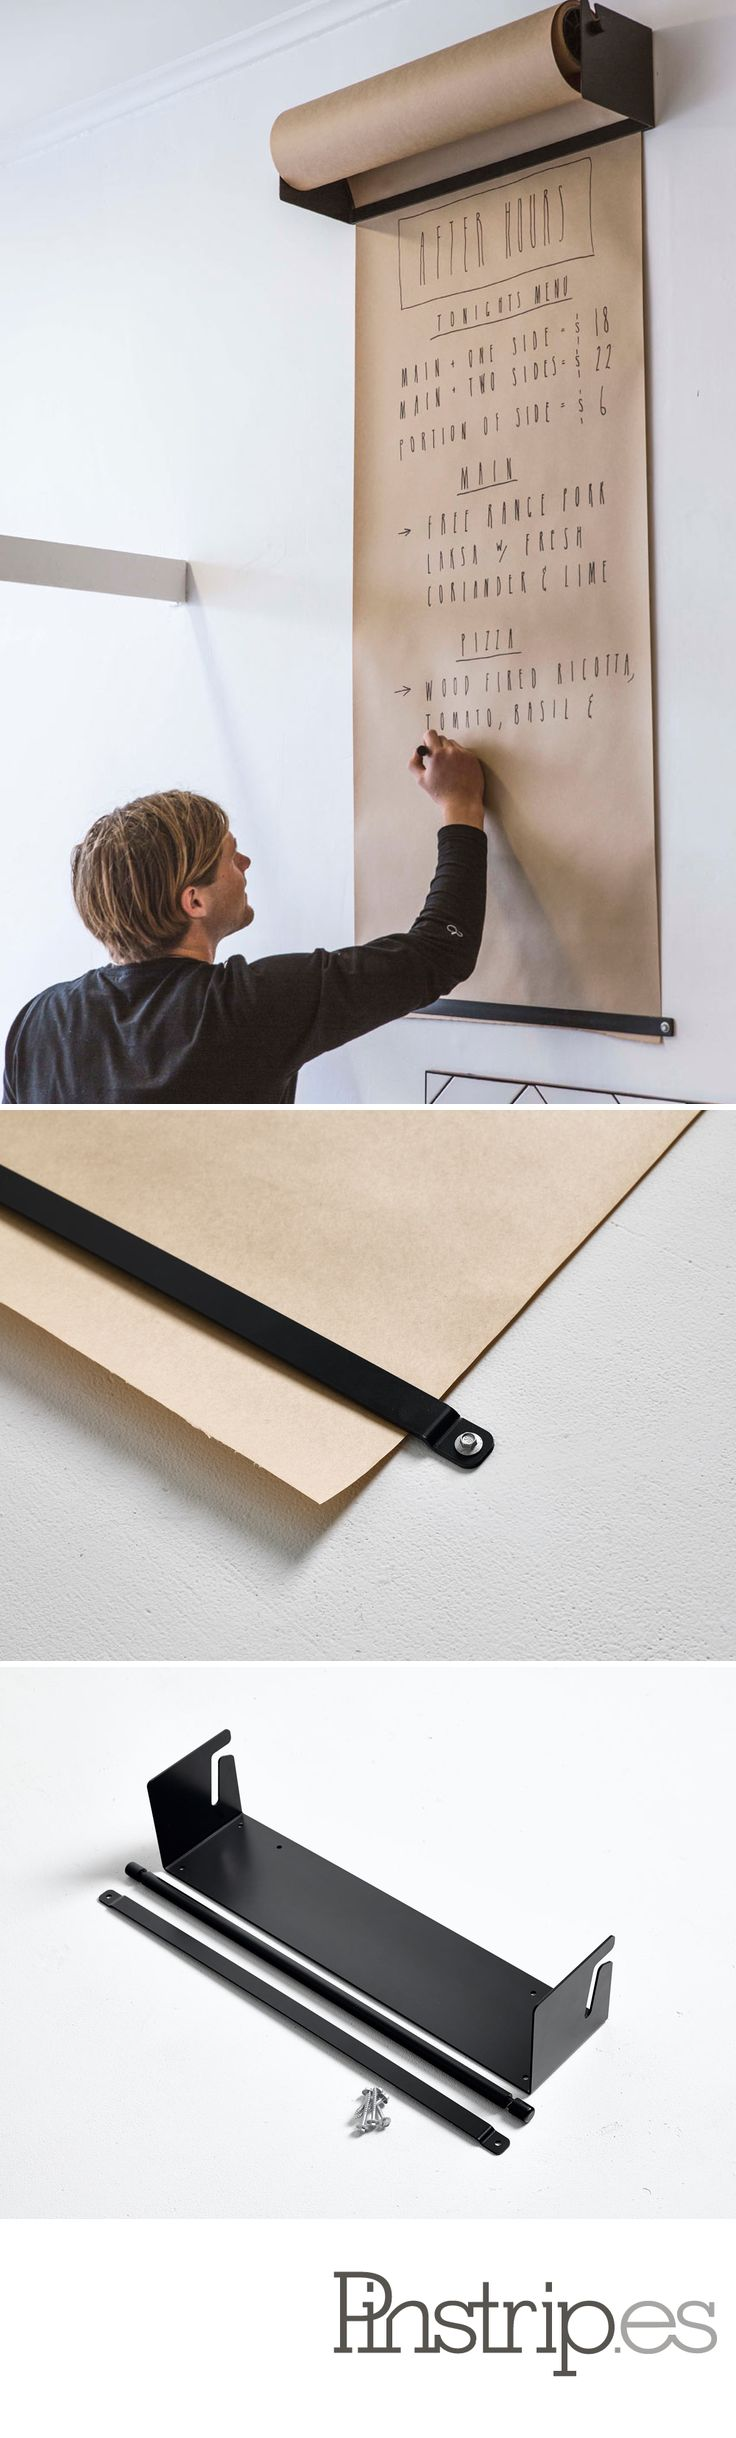 WALL-MOUNTED KRAFT PAPER ROLL DISPENSER - cleaner than chalkboard, if less *green* via @designmilk